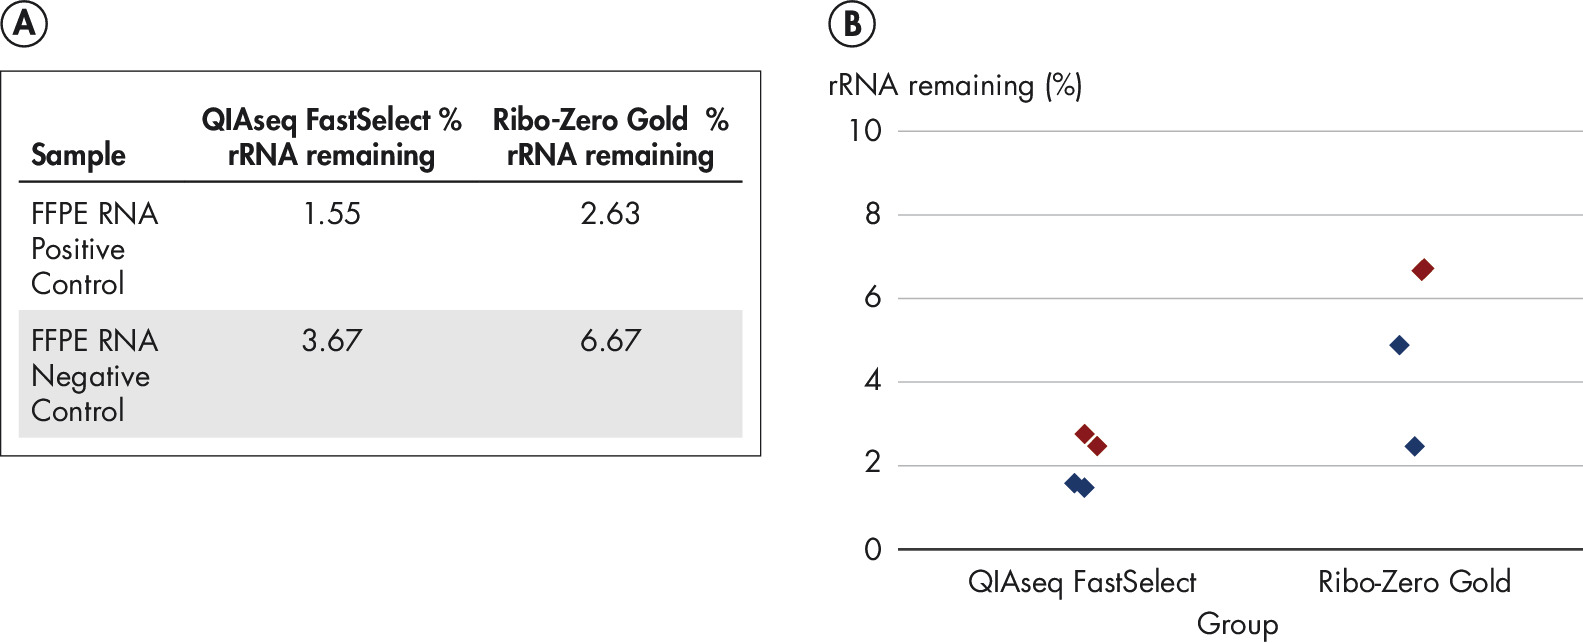 QIAseq FastSelect provides robust performance with FFPE standards (% rRNA remaining).